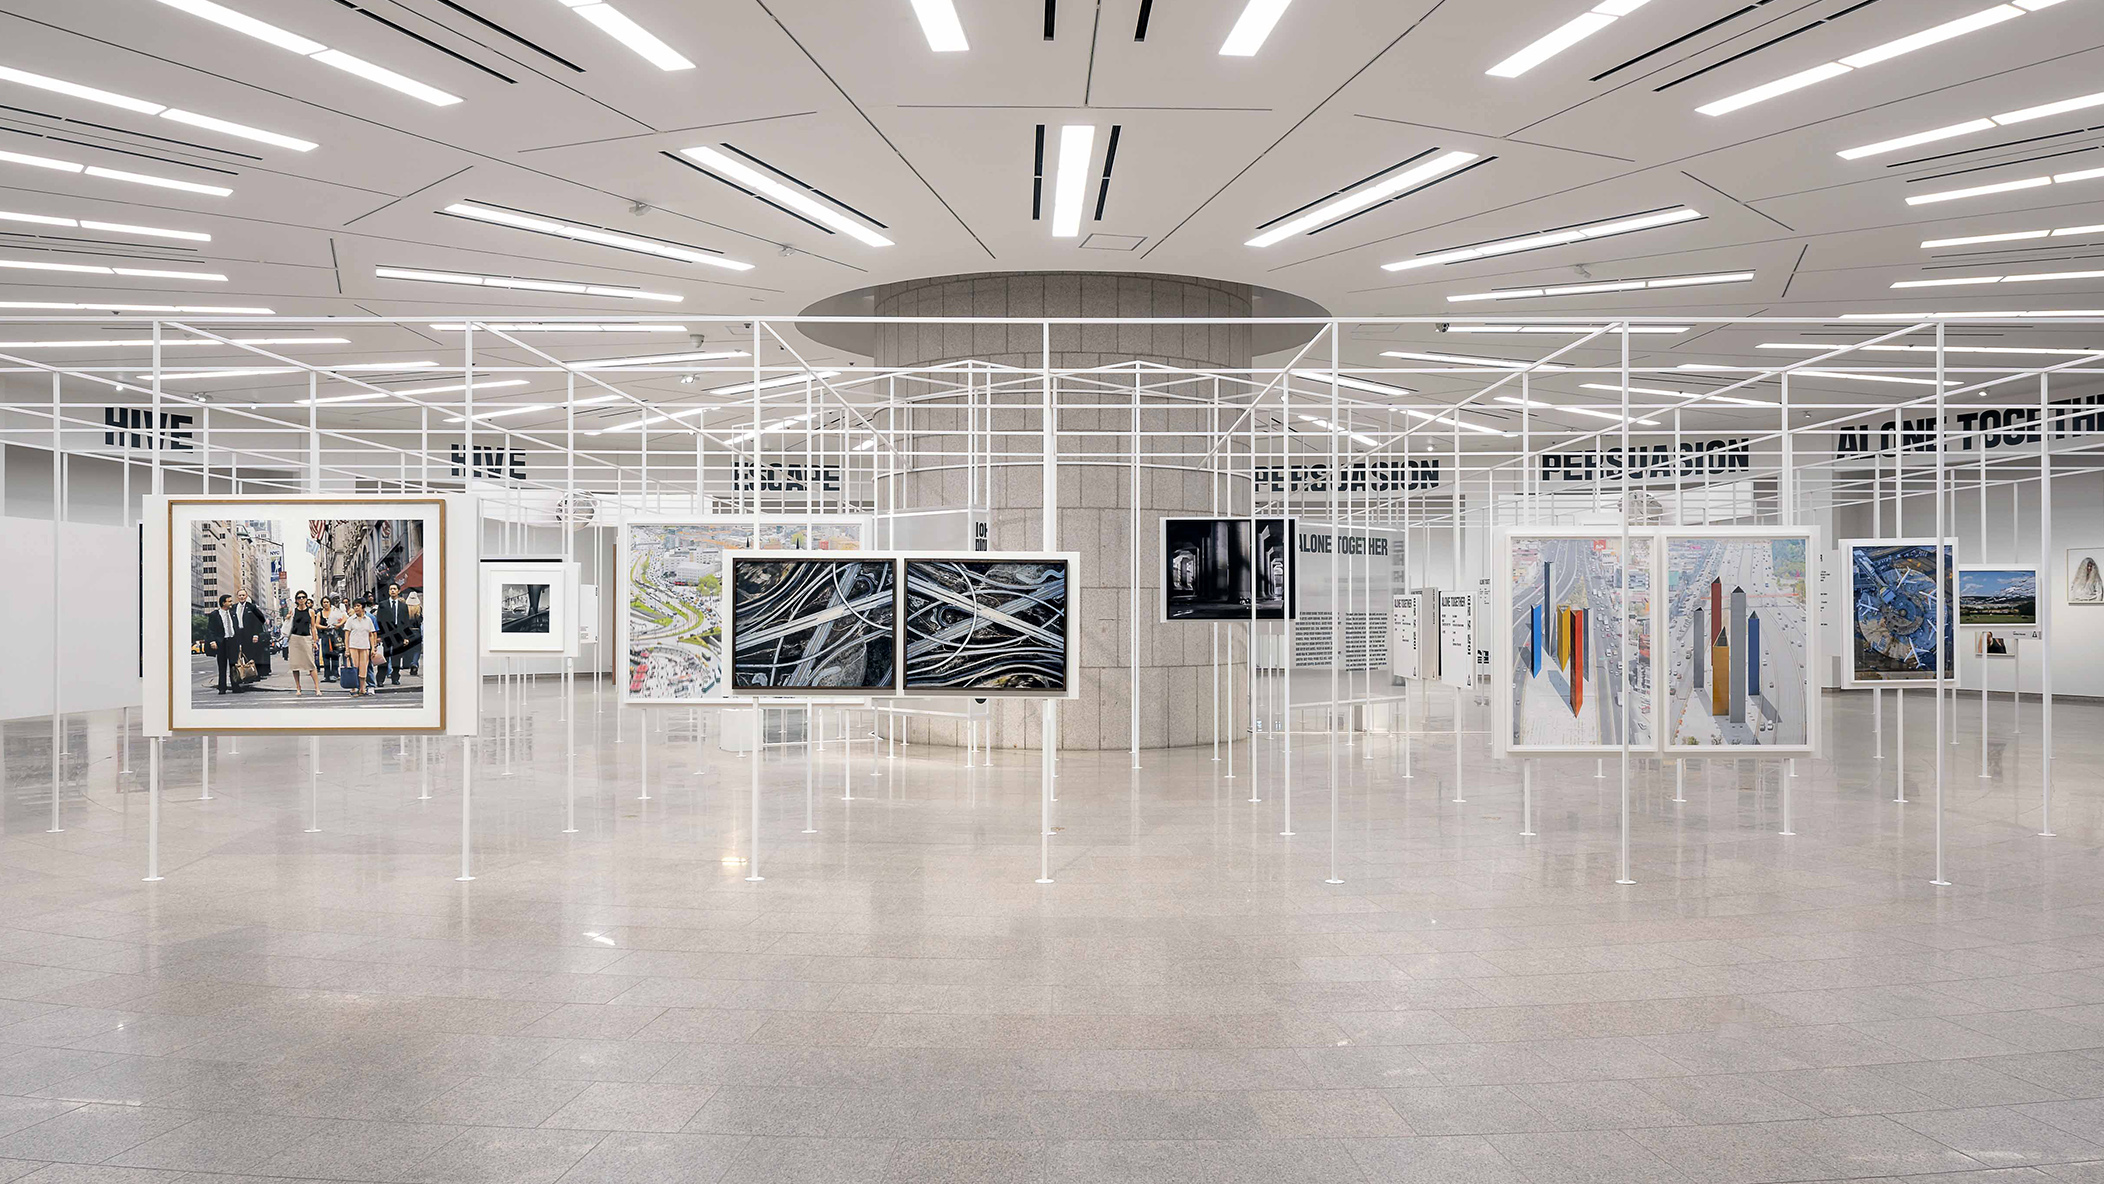 Installation of 'Civilization: The Way We Live Now' an exhibition by The Foundation for the Exhibition of Photography at The National Museum of Modern and Contemporary Art, Seoul, Korea